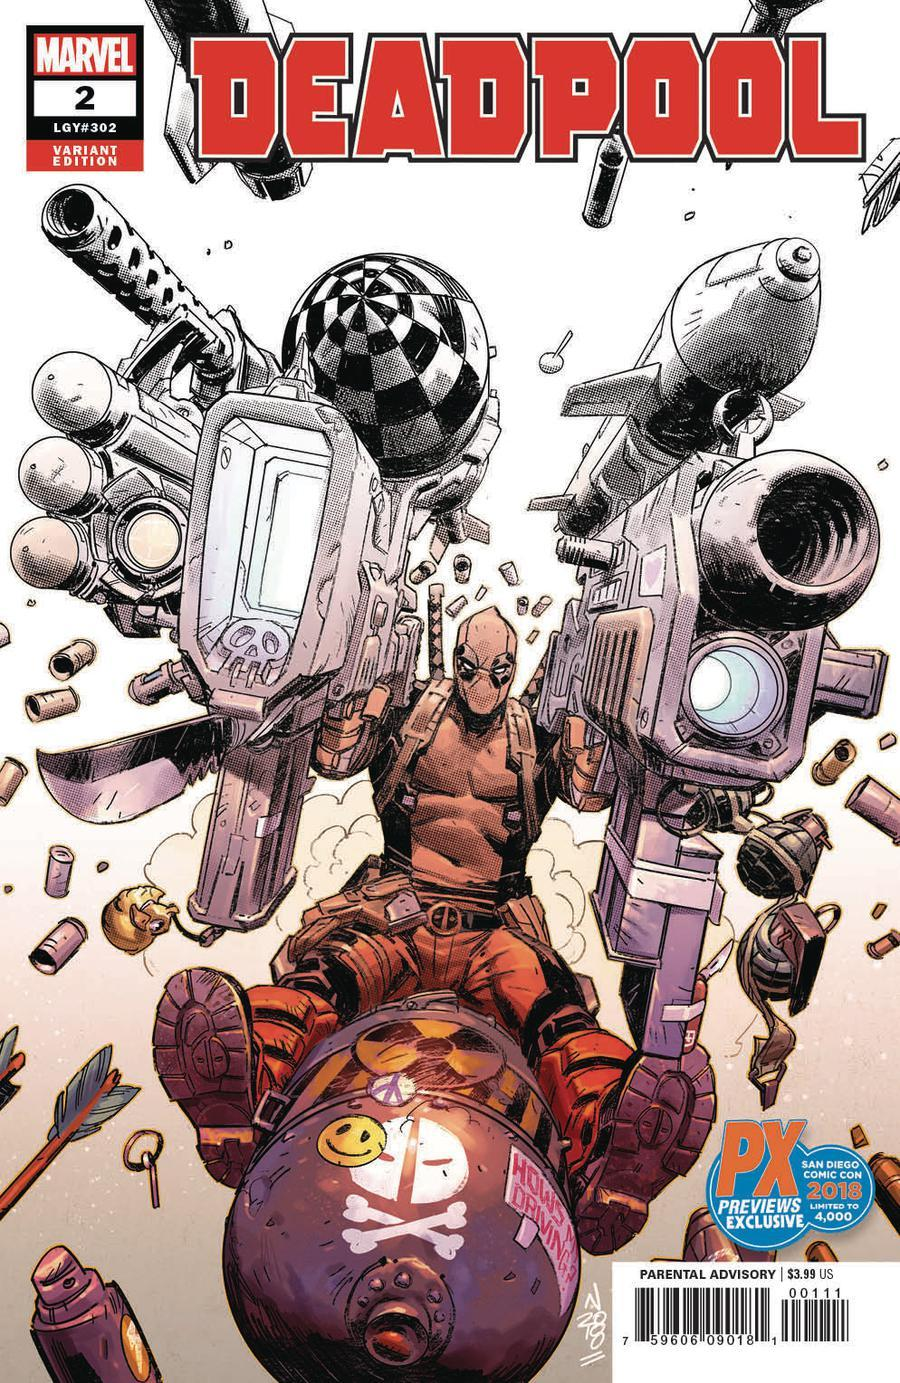 Deadpool Vol. 6 #2